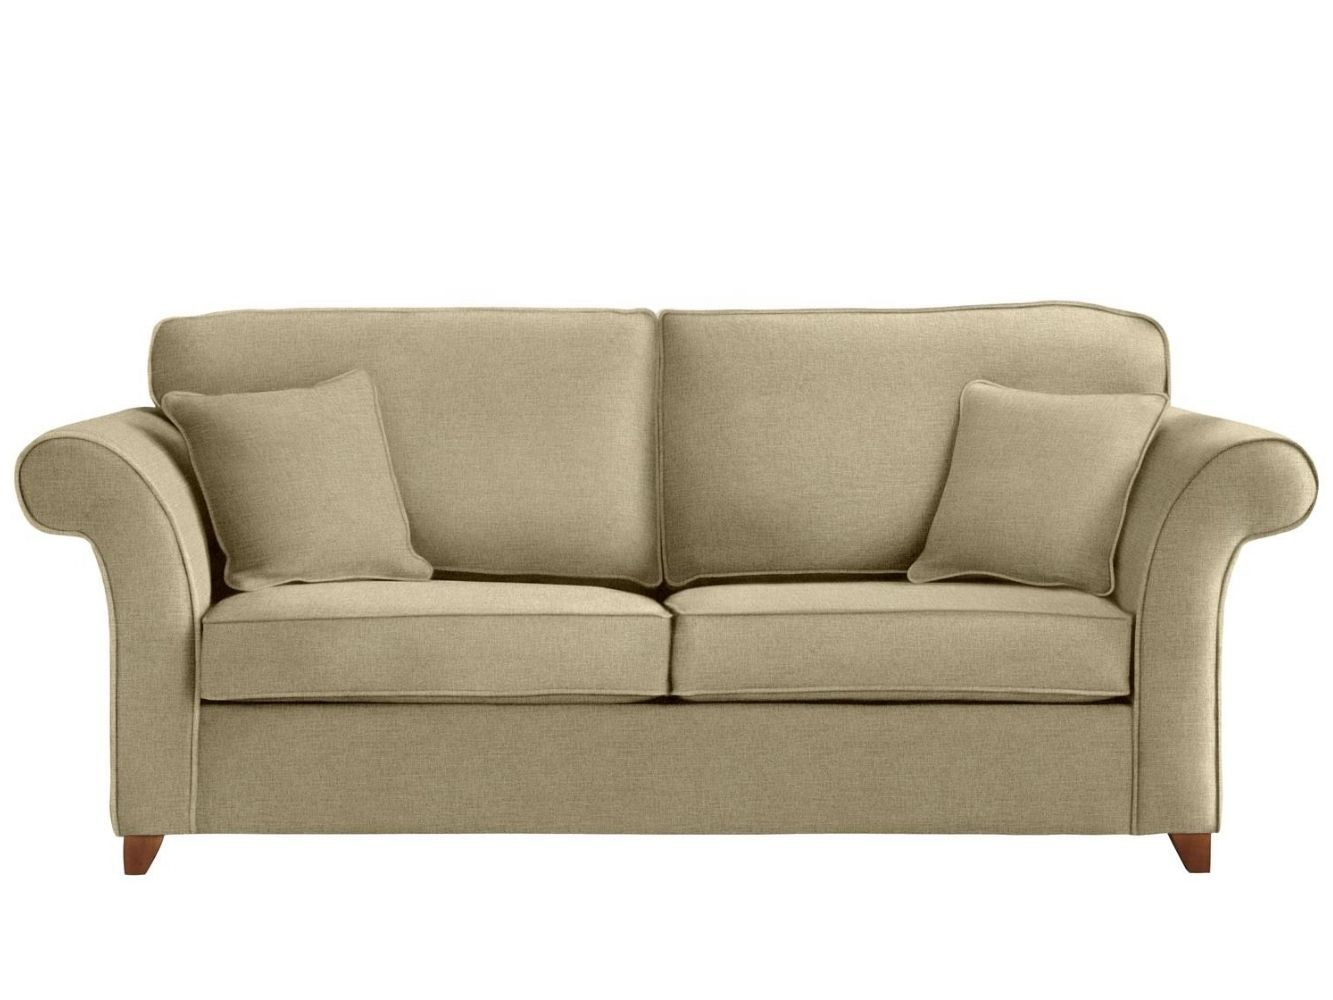 This is how I look in Country Linen Toast (Discontinued Fabric) with reflex foam seat cushions